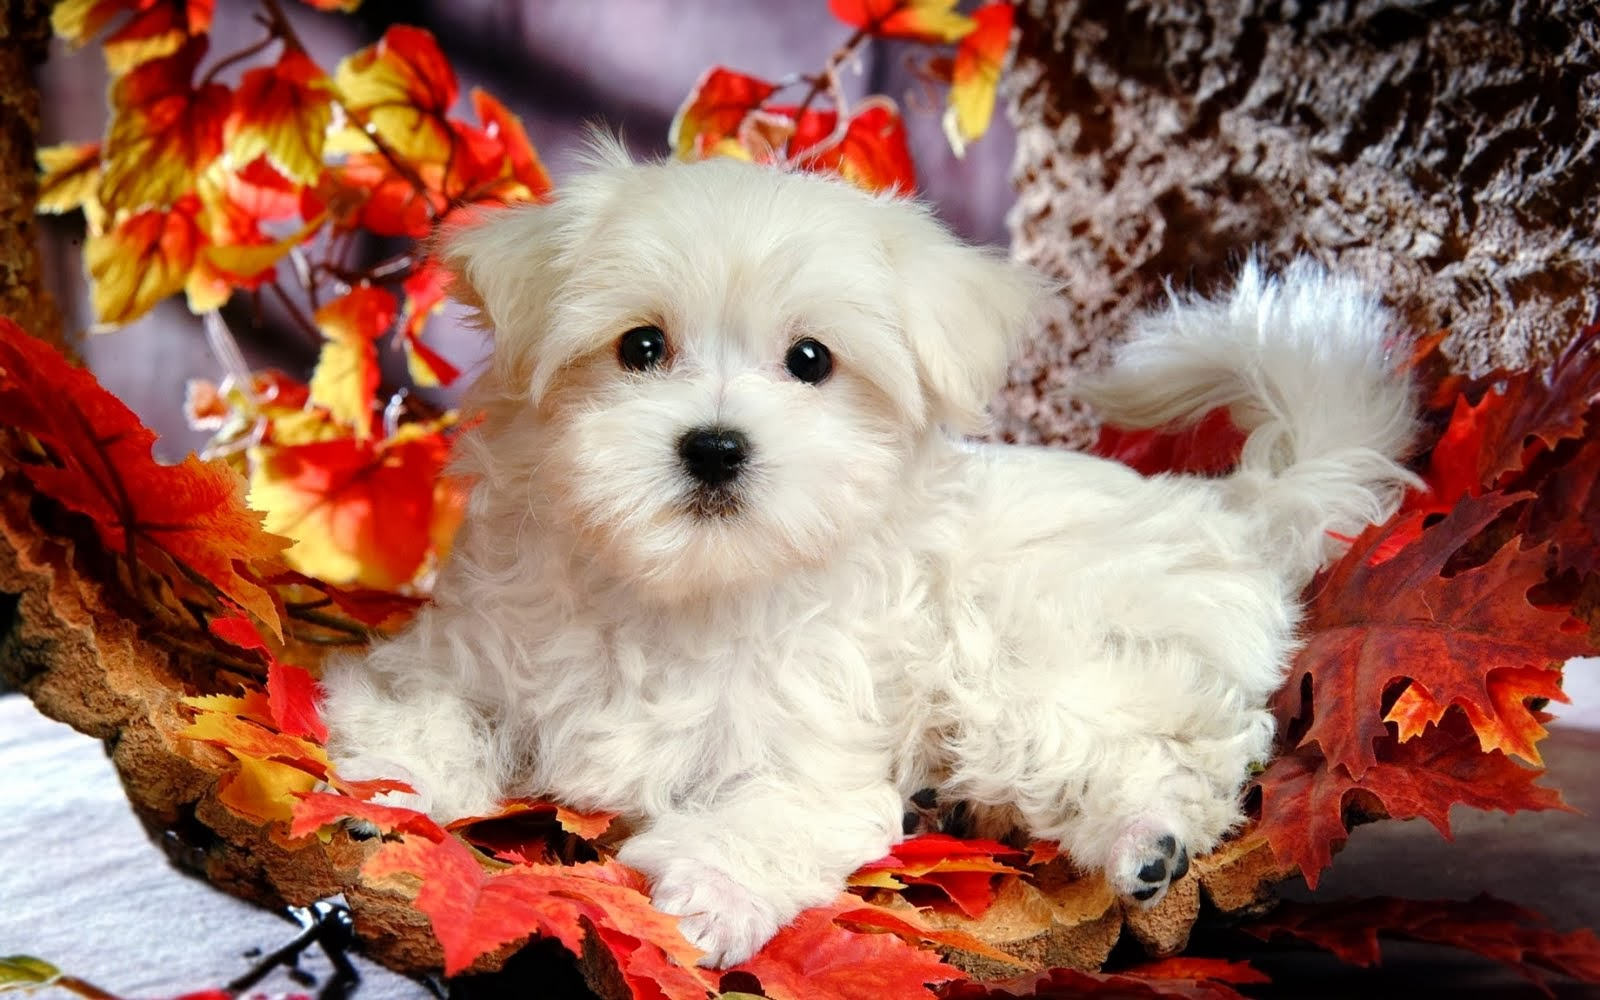 Beautiful Cute Puppies Wallpapers ~ Free HD Desktop Wallpapers Download